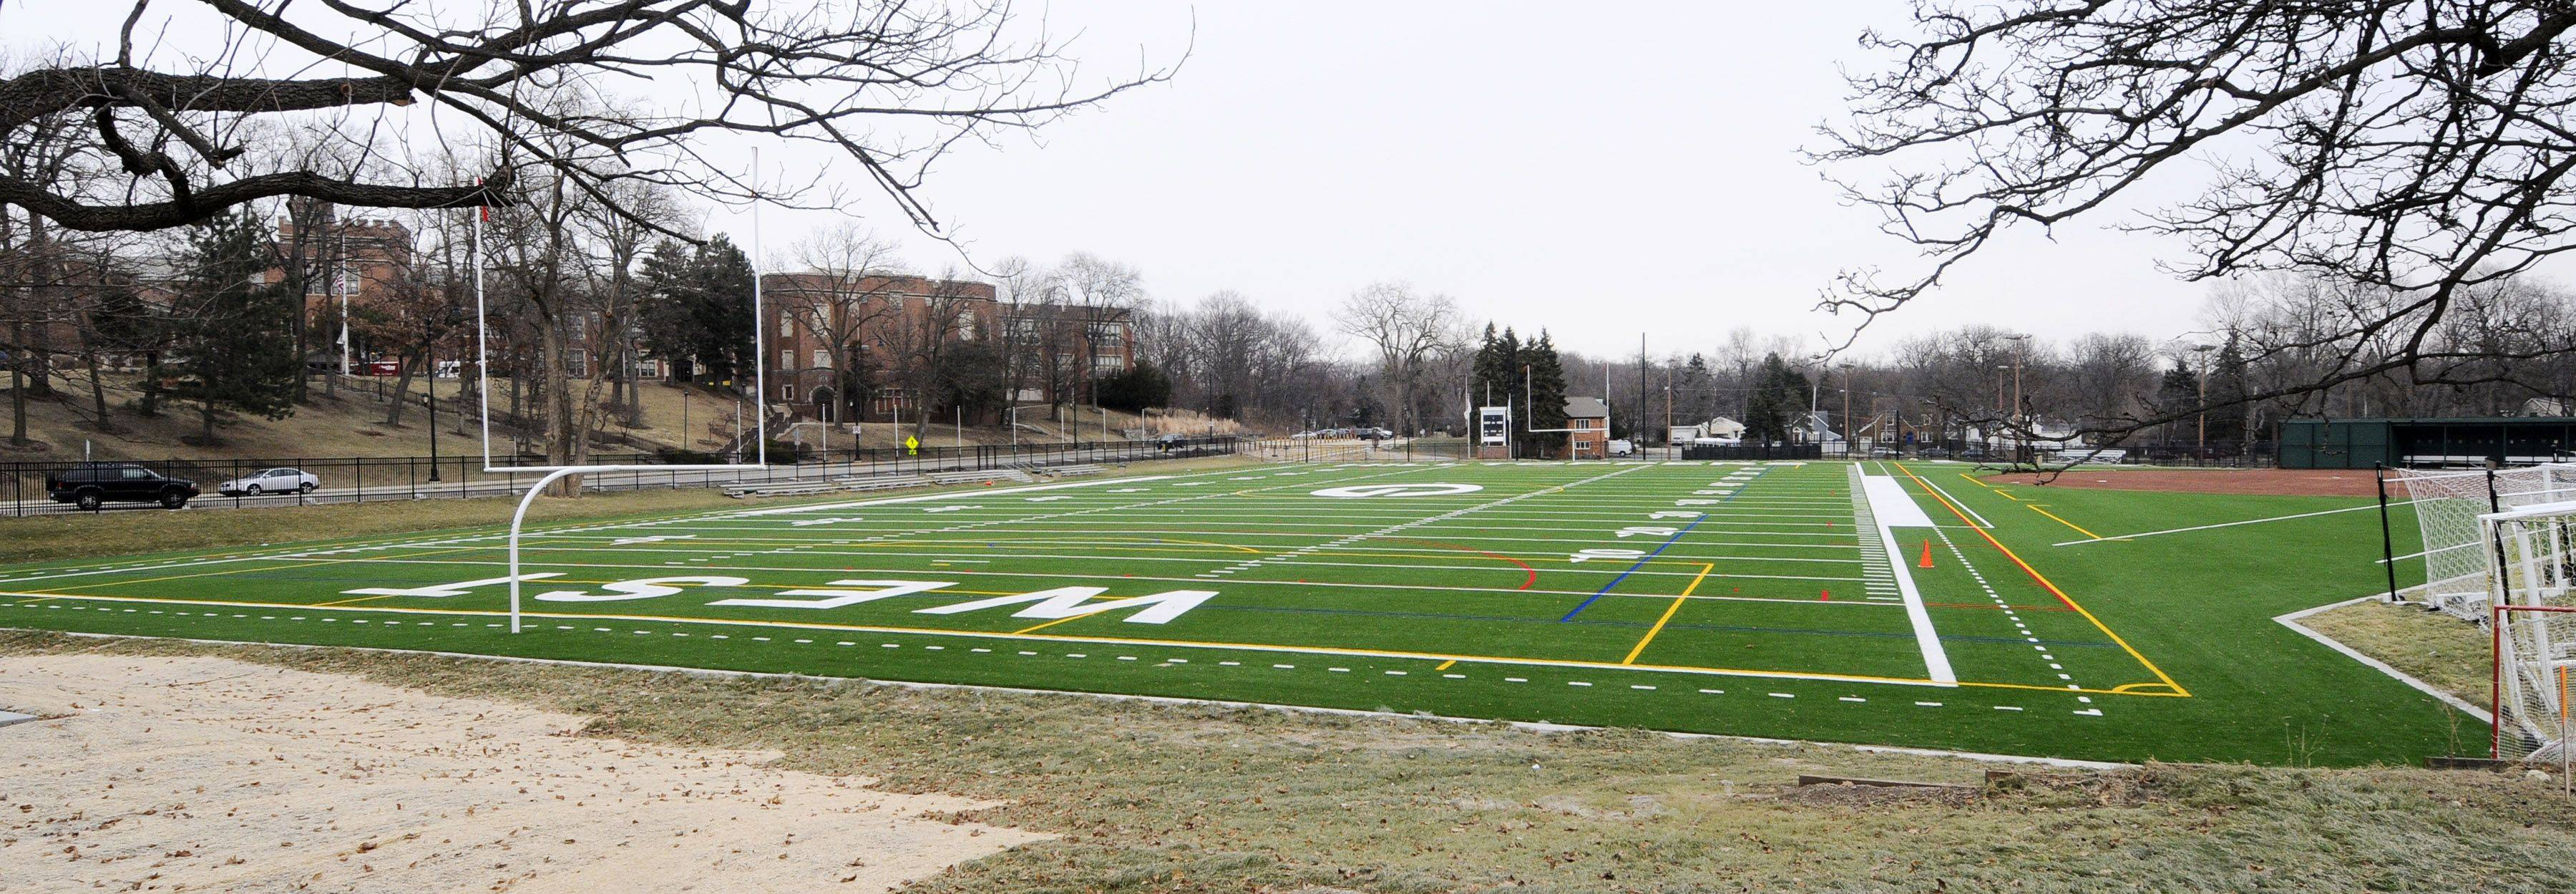 The Glen Ellyn village board will consider a variance request next month from Glenbard High School District 87 to install lights at Memorial Field.